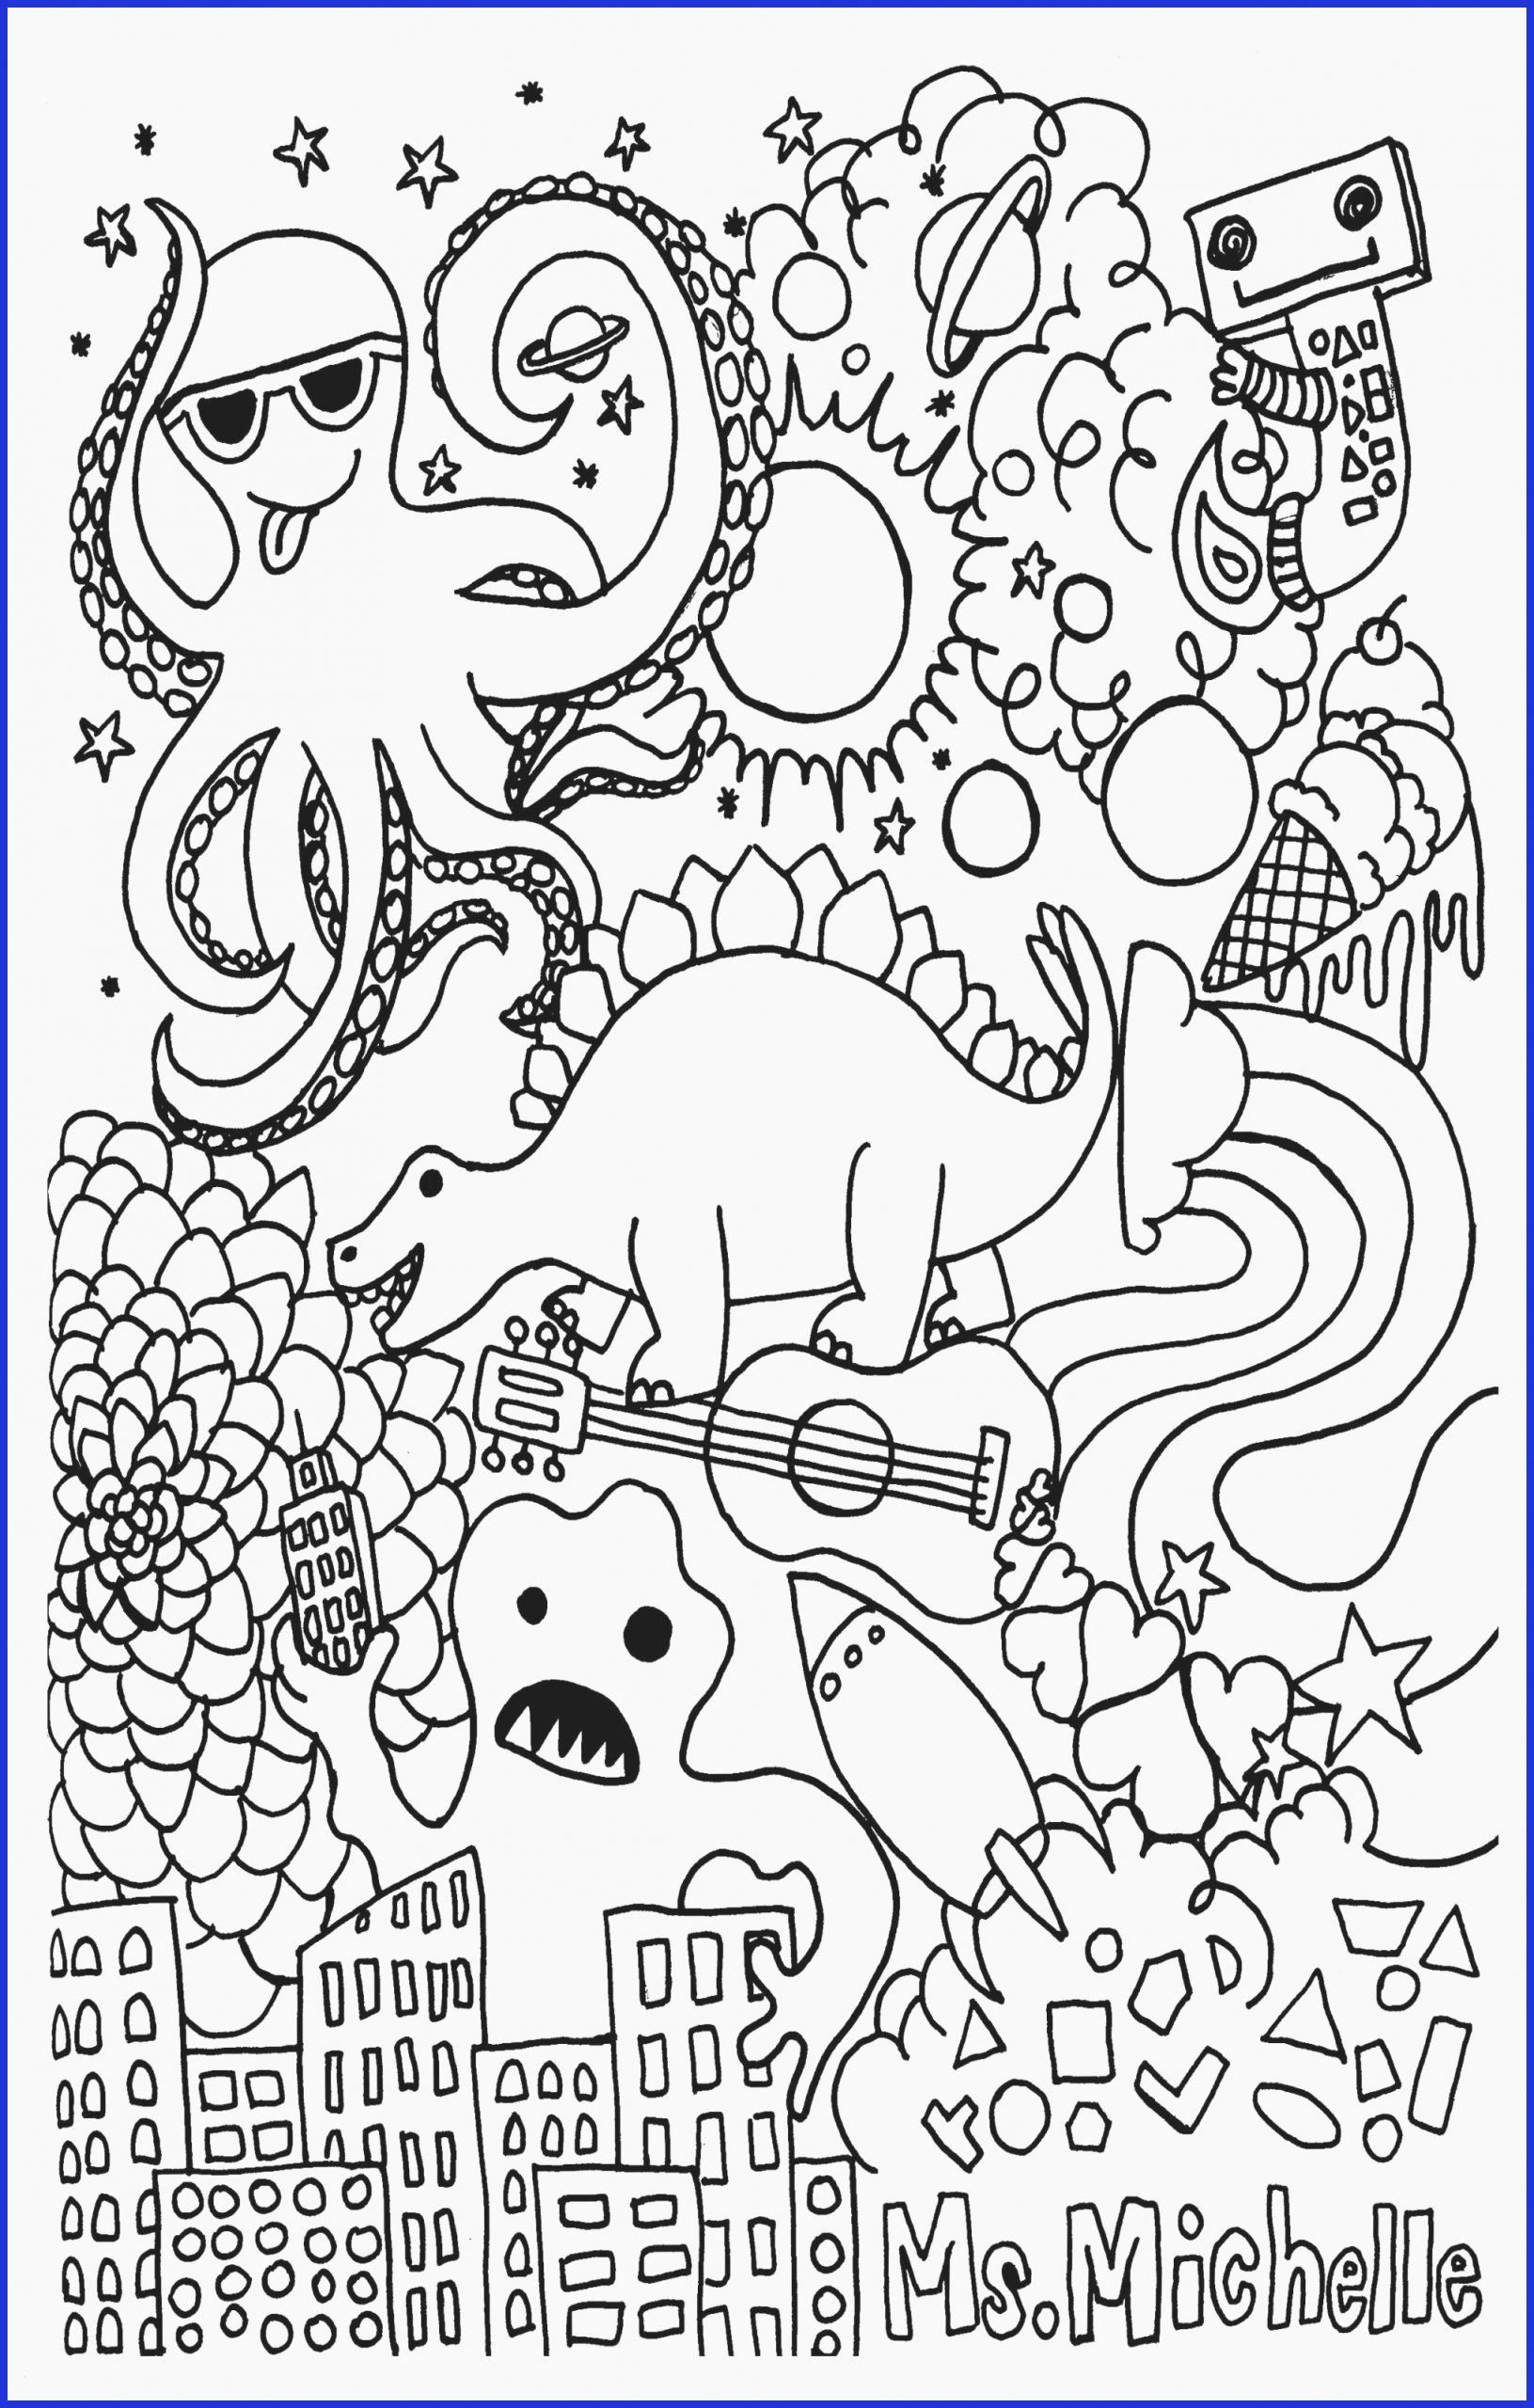 Funny Animals Coloring Pages Unique Coloring Pages Free Valentines Day Coloring Pages Coloring Pages Inspirational Mandala Coloring Pages Disney Coloring Pages